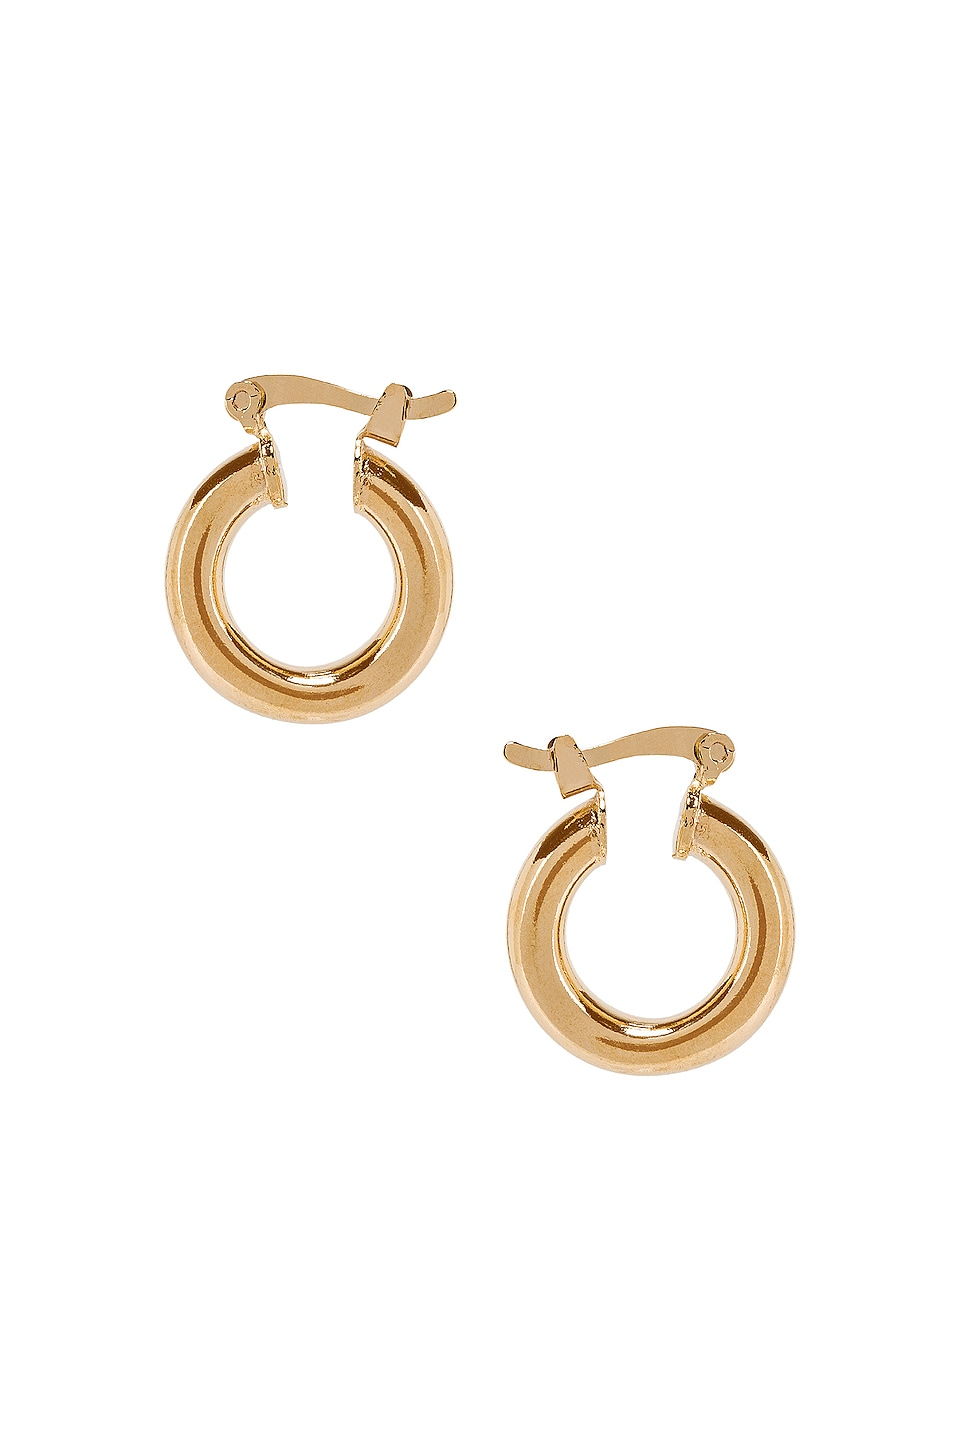 The M Jewelers NY Small Ravello Hoops in Gold